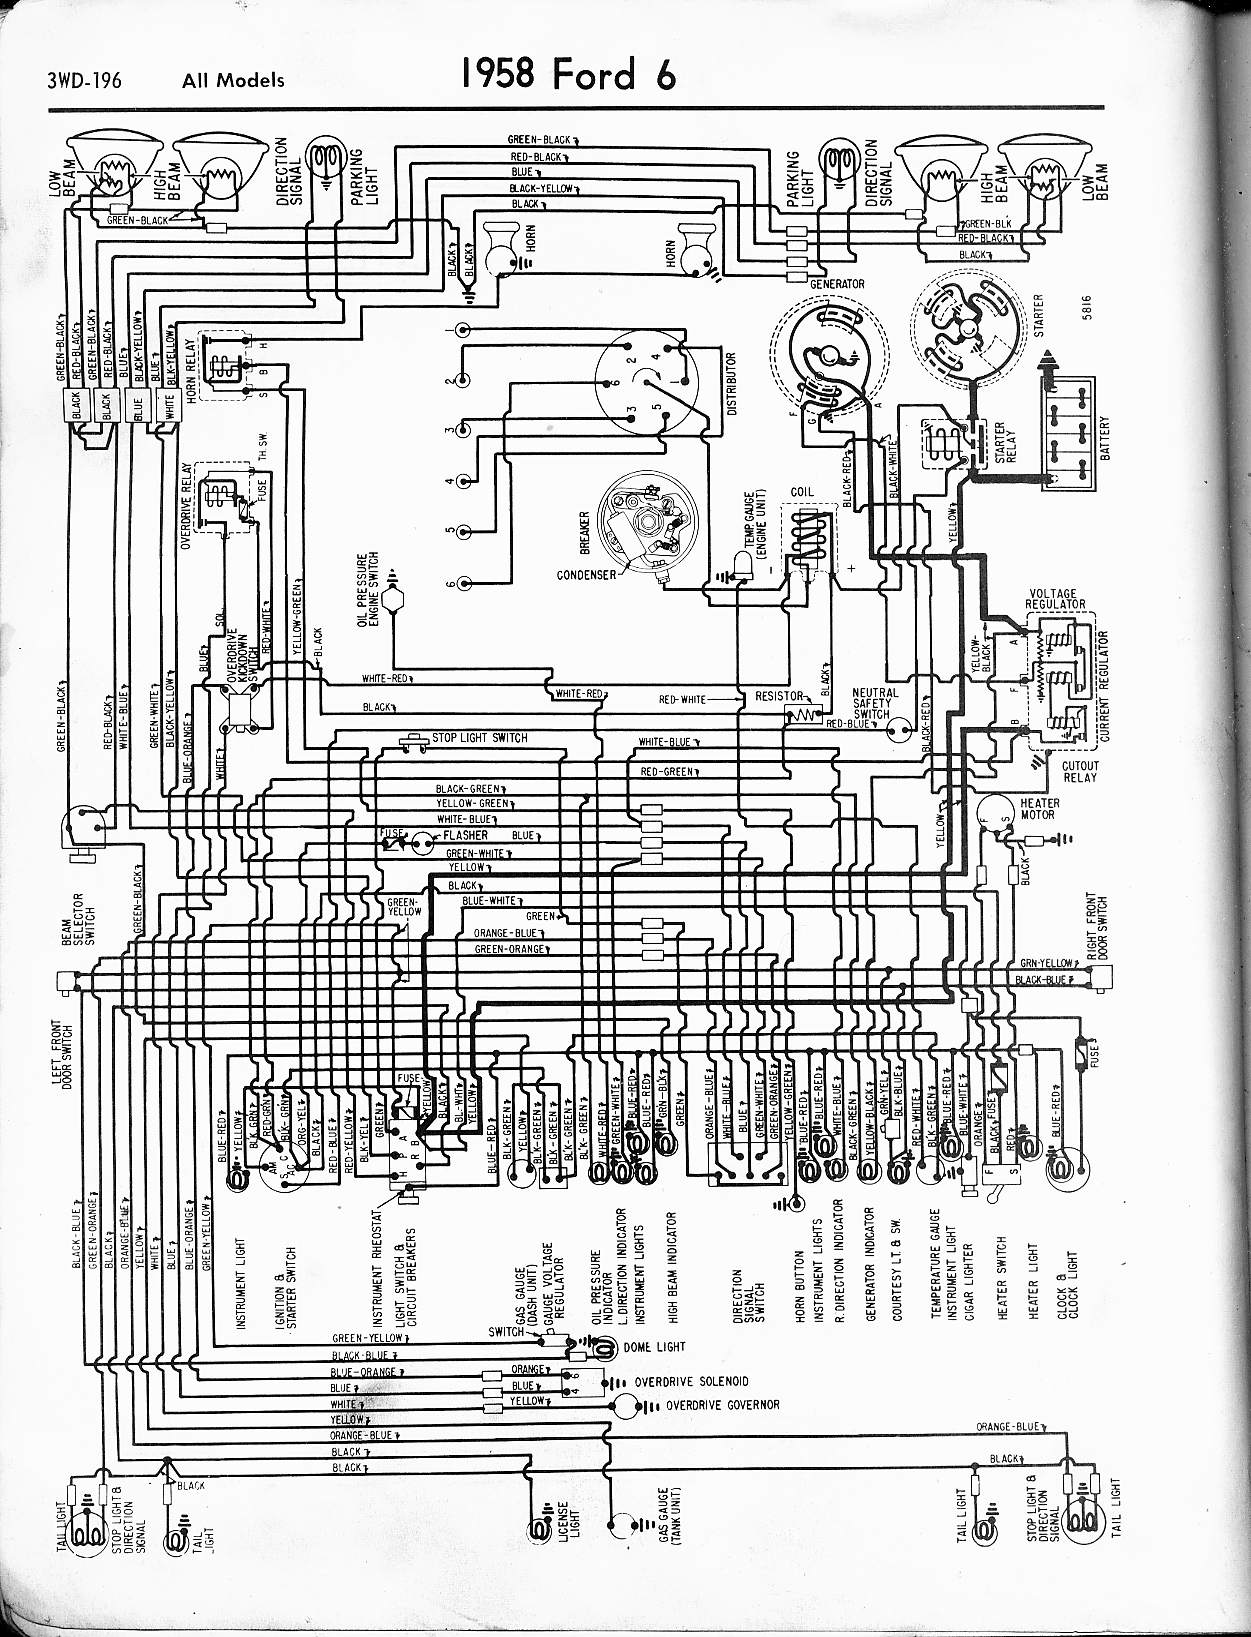 MWire5765 196 ford wiring diagram manual ford wiring diagrams instruction 1960 ford f100 wiring diagram at bayanpartner.co